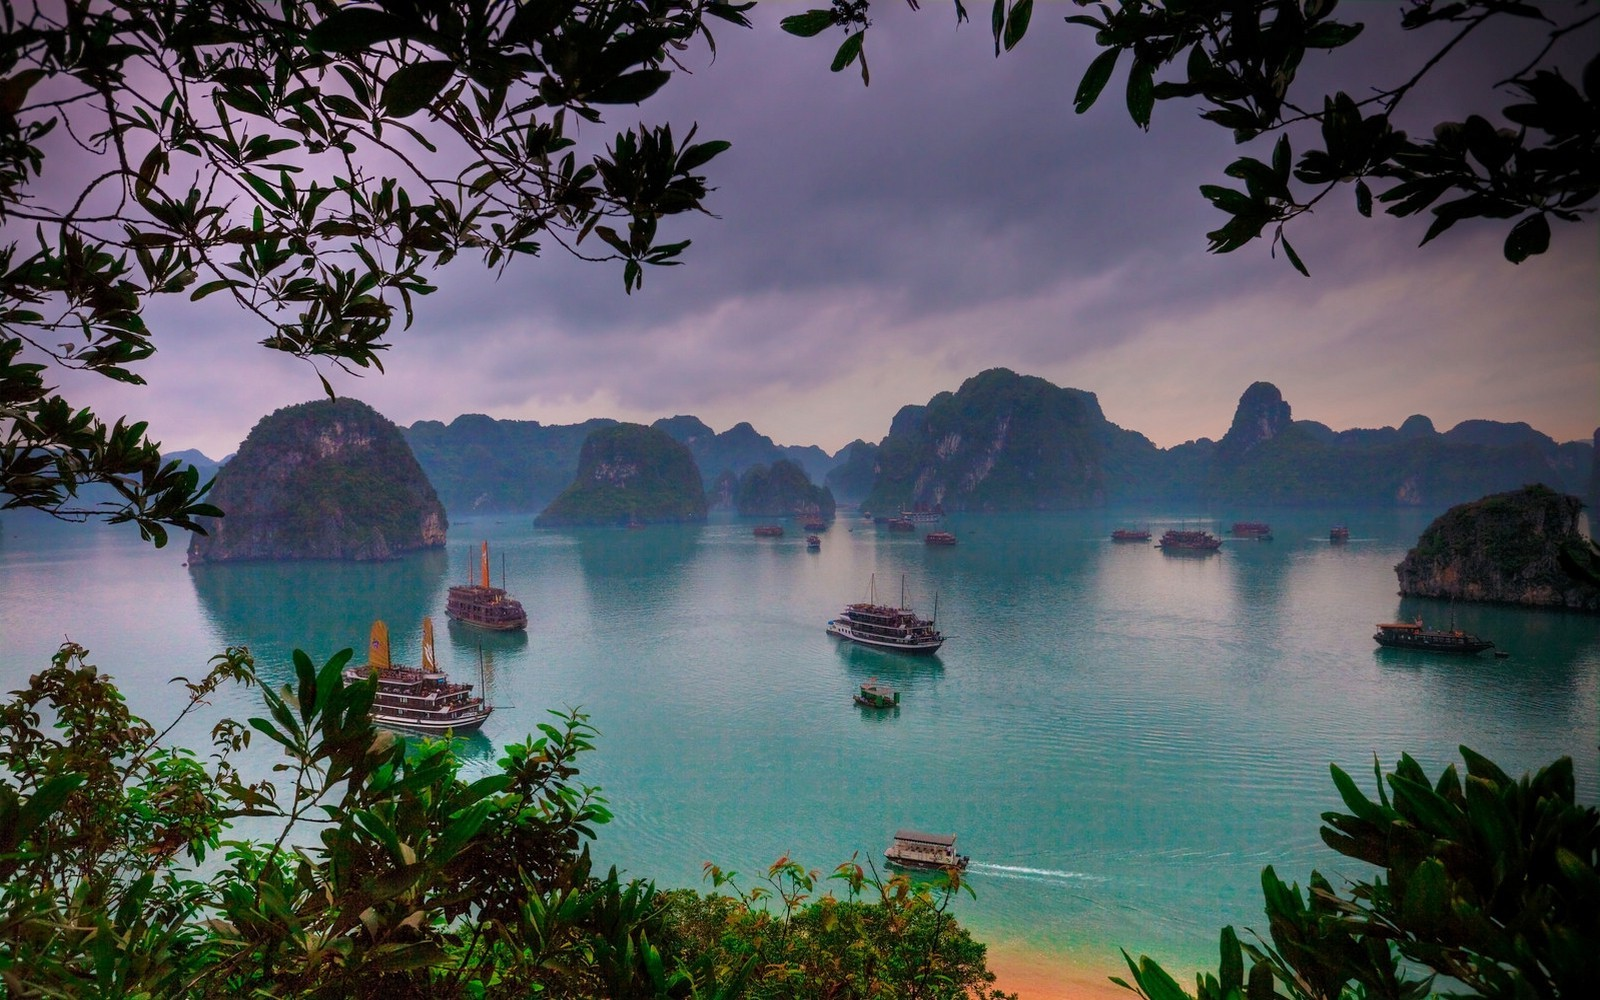 Ha Long Bay In Vietnam Wallpaper And Background Image 1600x1000